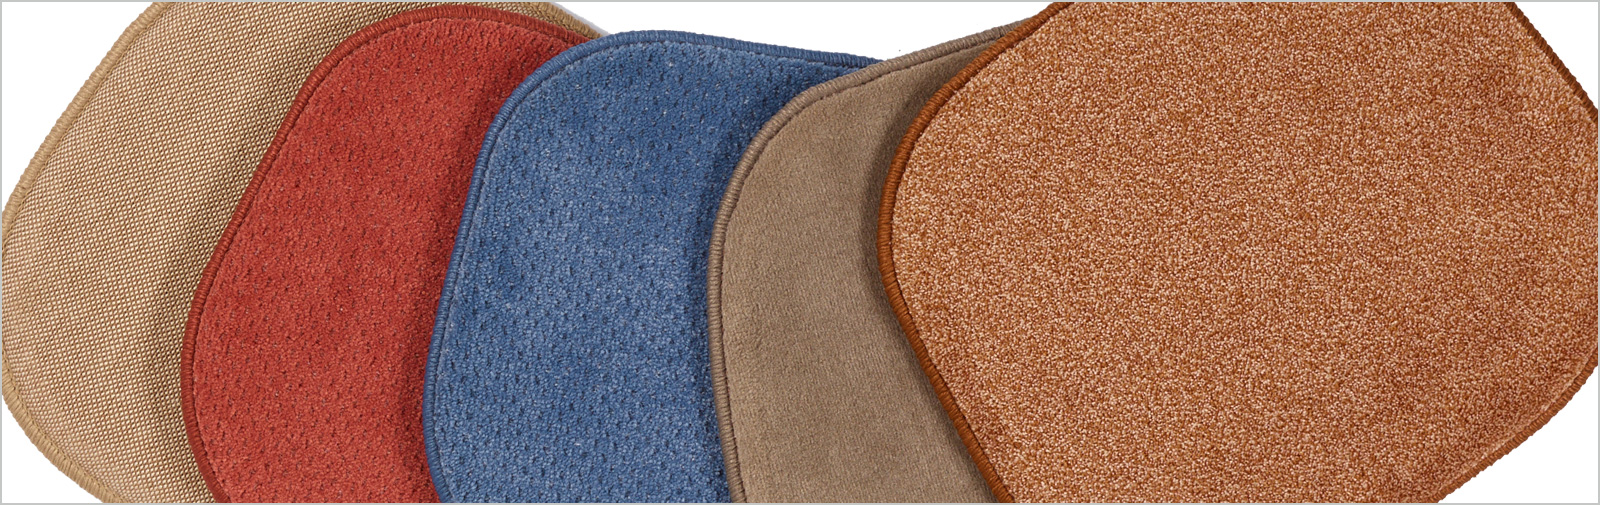 chair cushion special offer